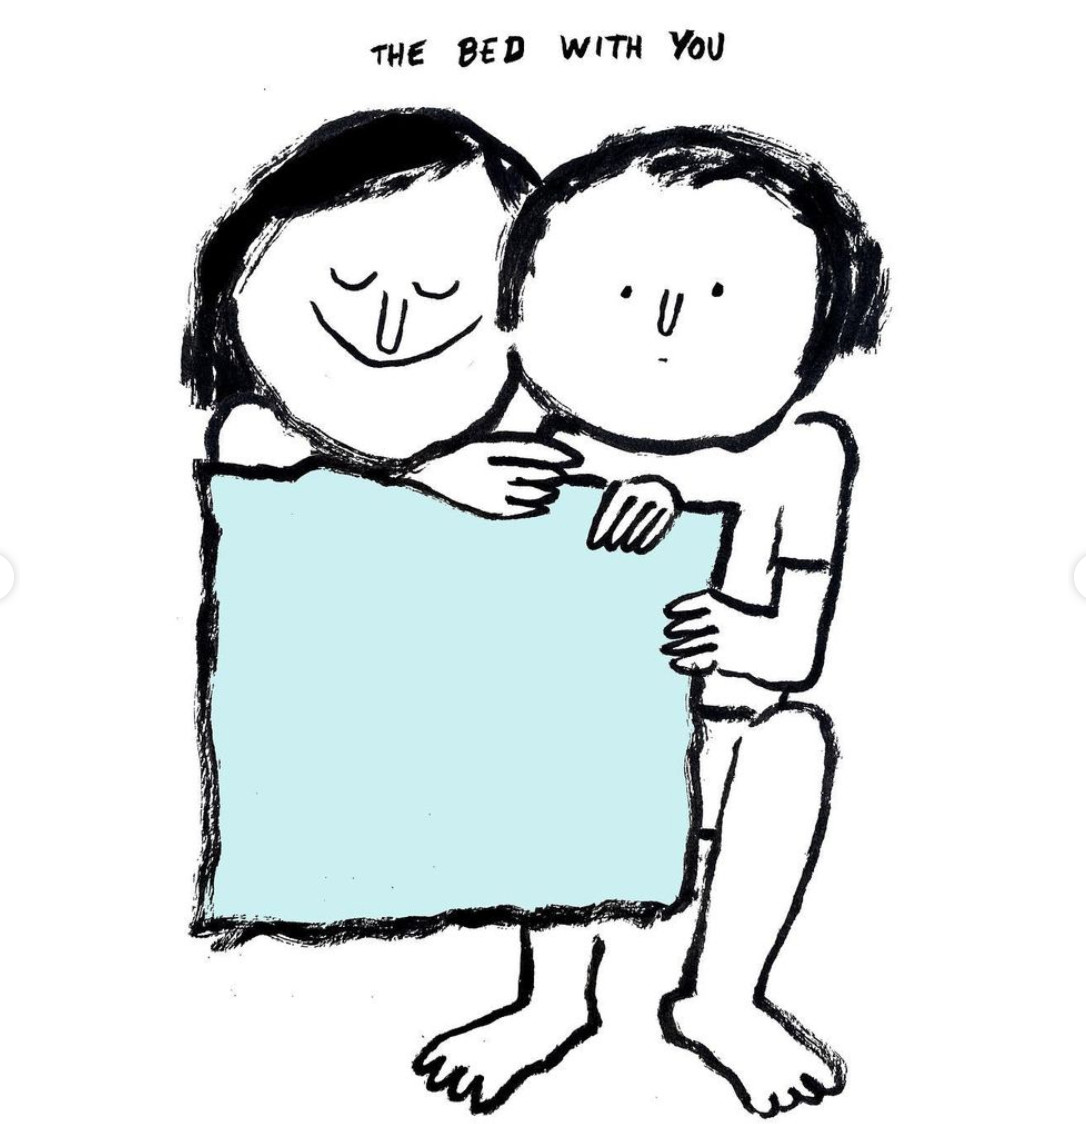 The bed with you, by Jean Jullien. Image courtesy of Jullien's Instagram